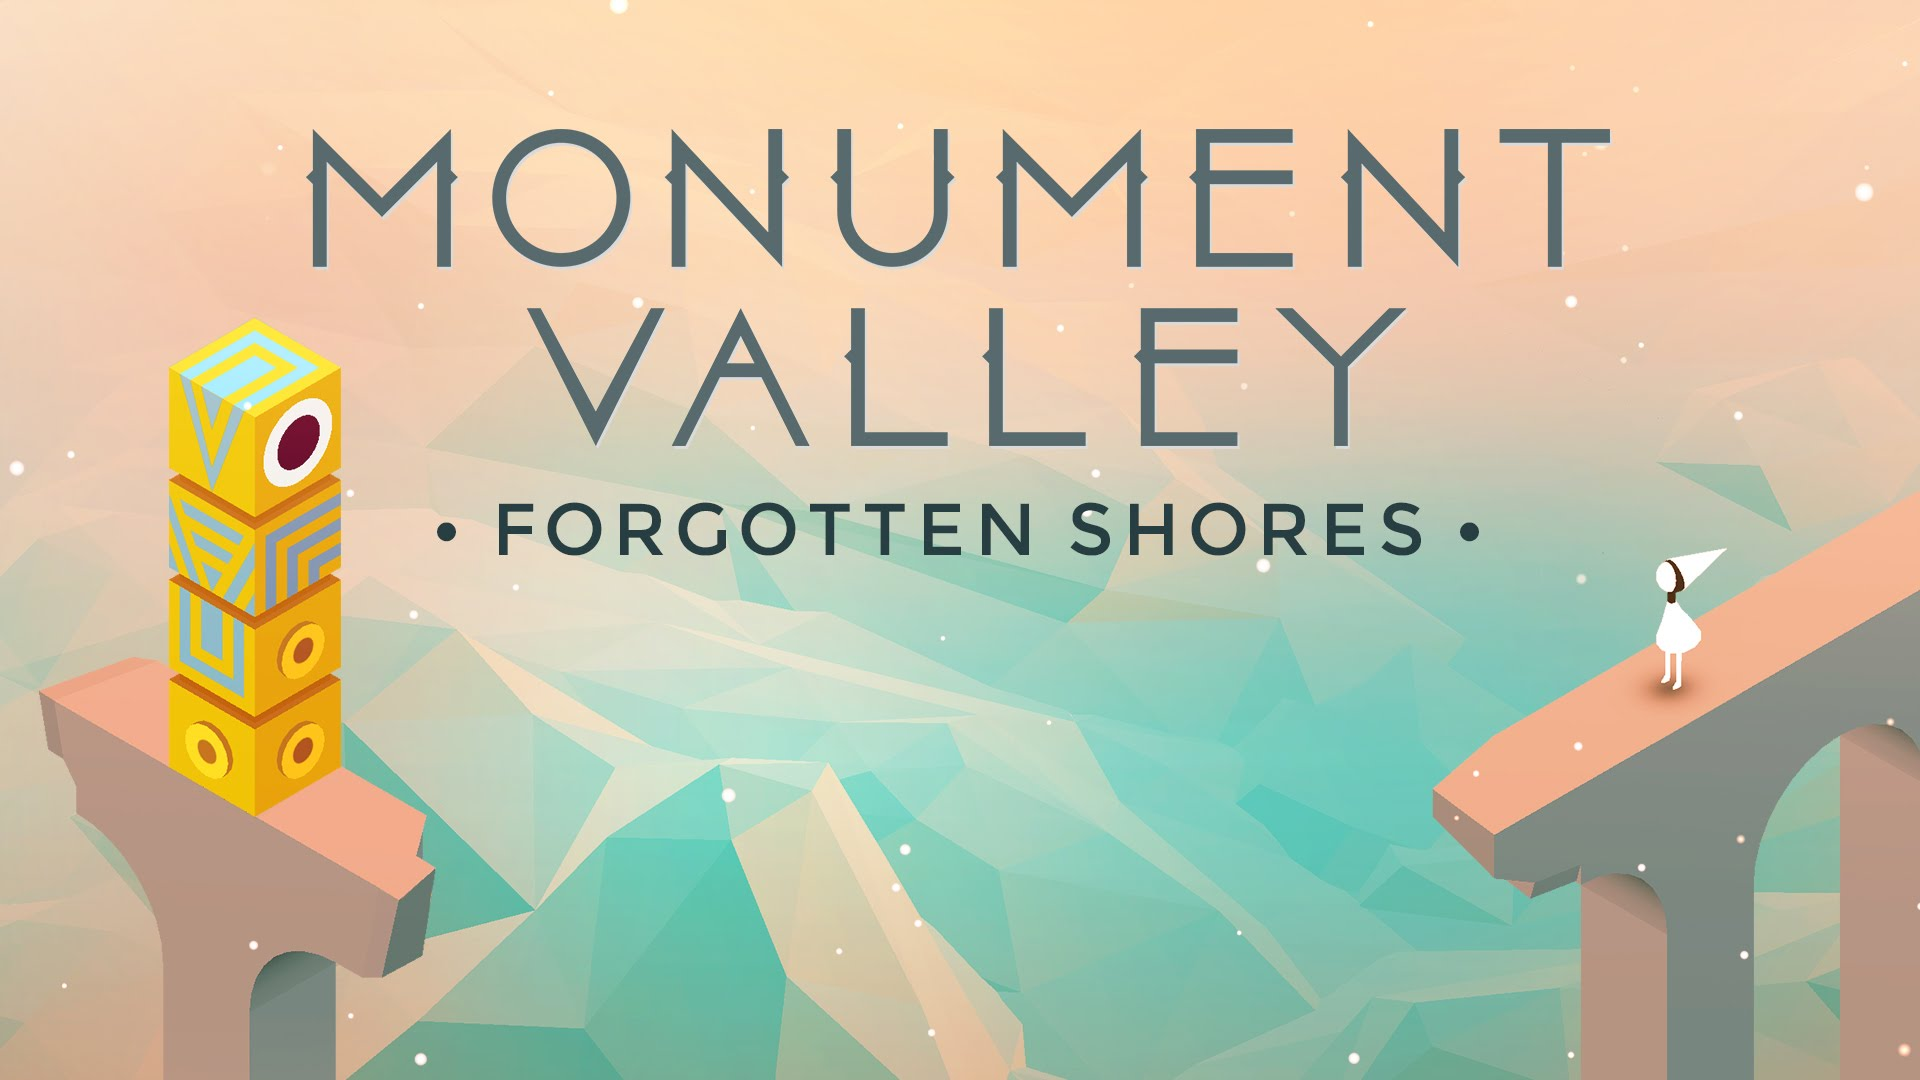 Photo of Monument Valley: expansão(in-app) Forgotten Shores na área, USD 2